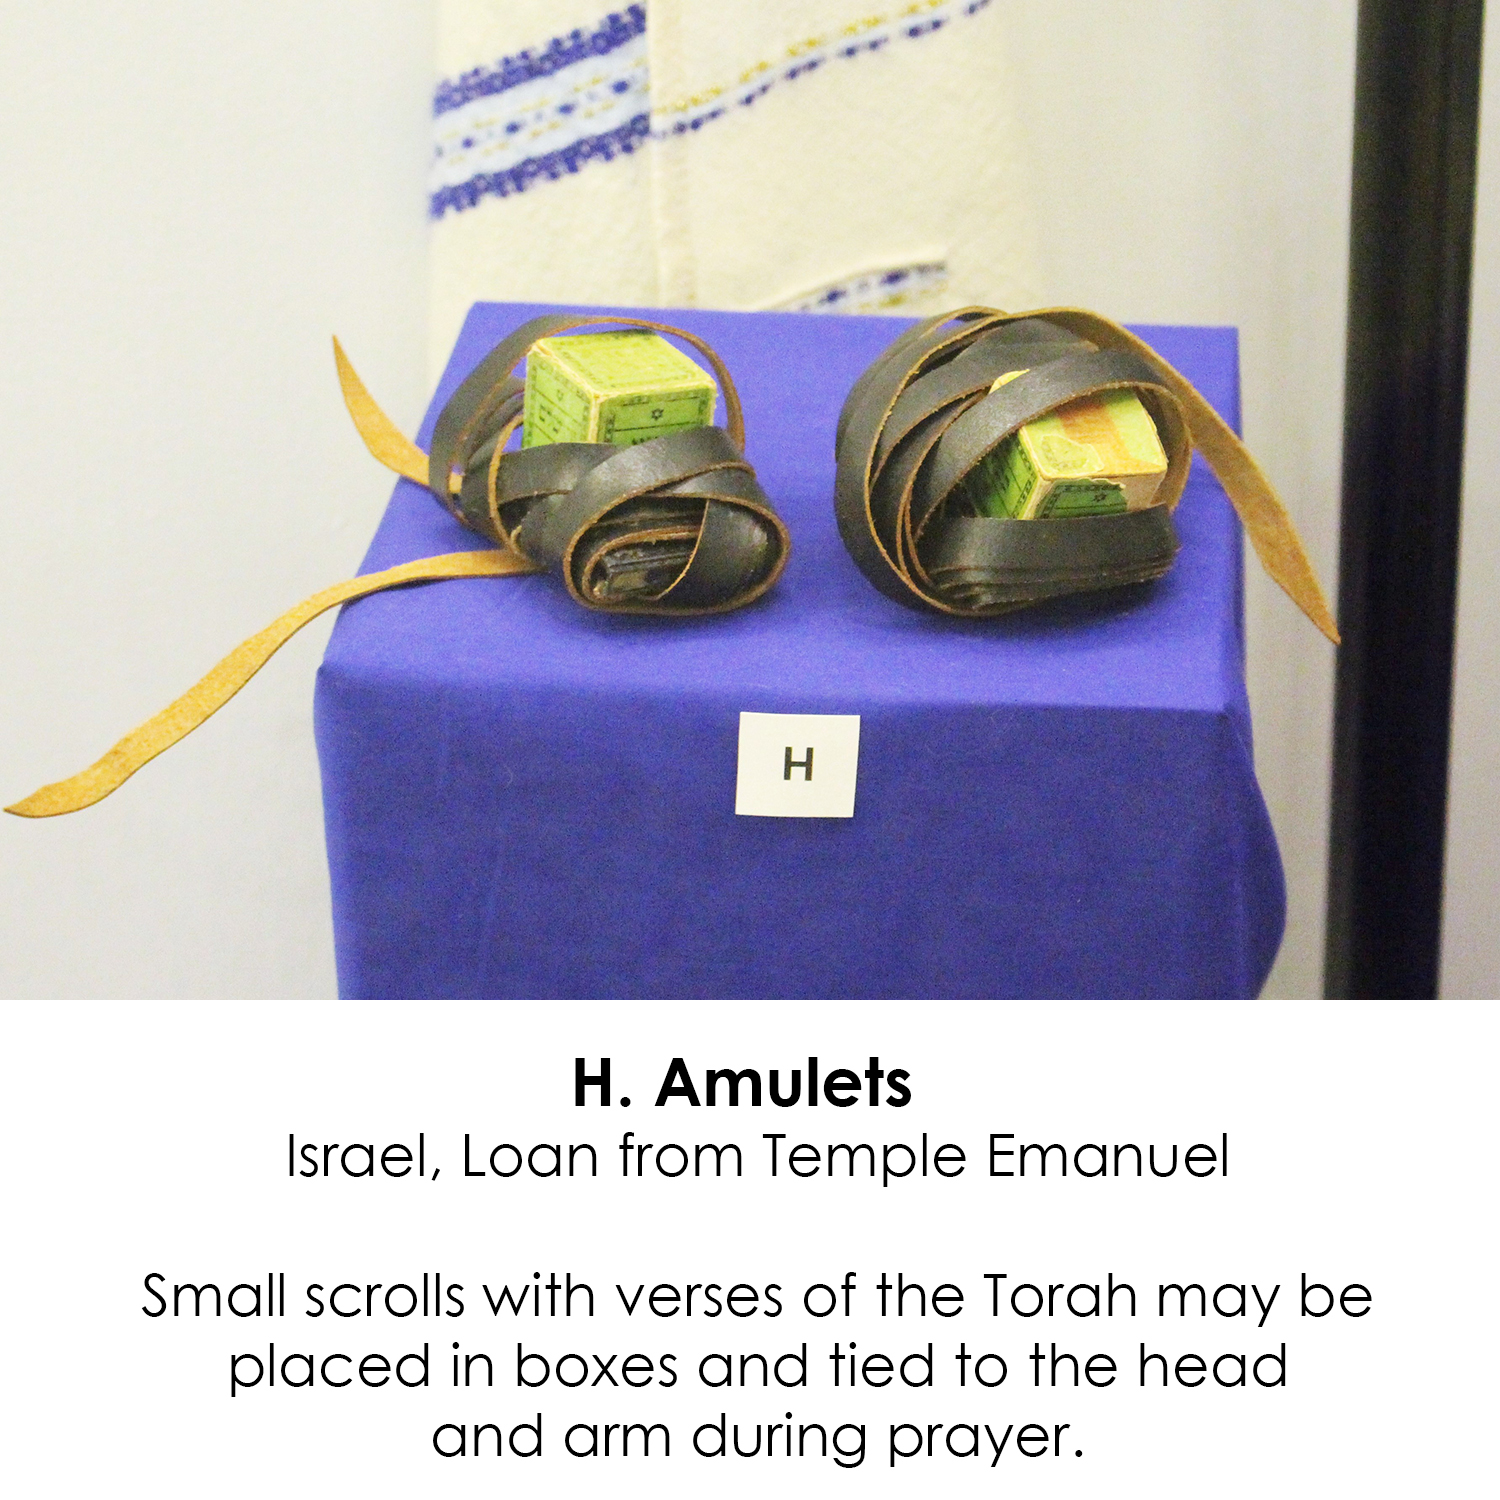 Amulets with verses from the Torah